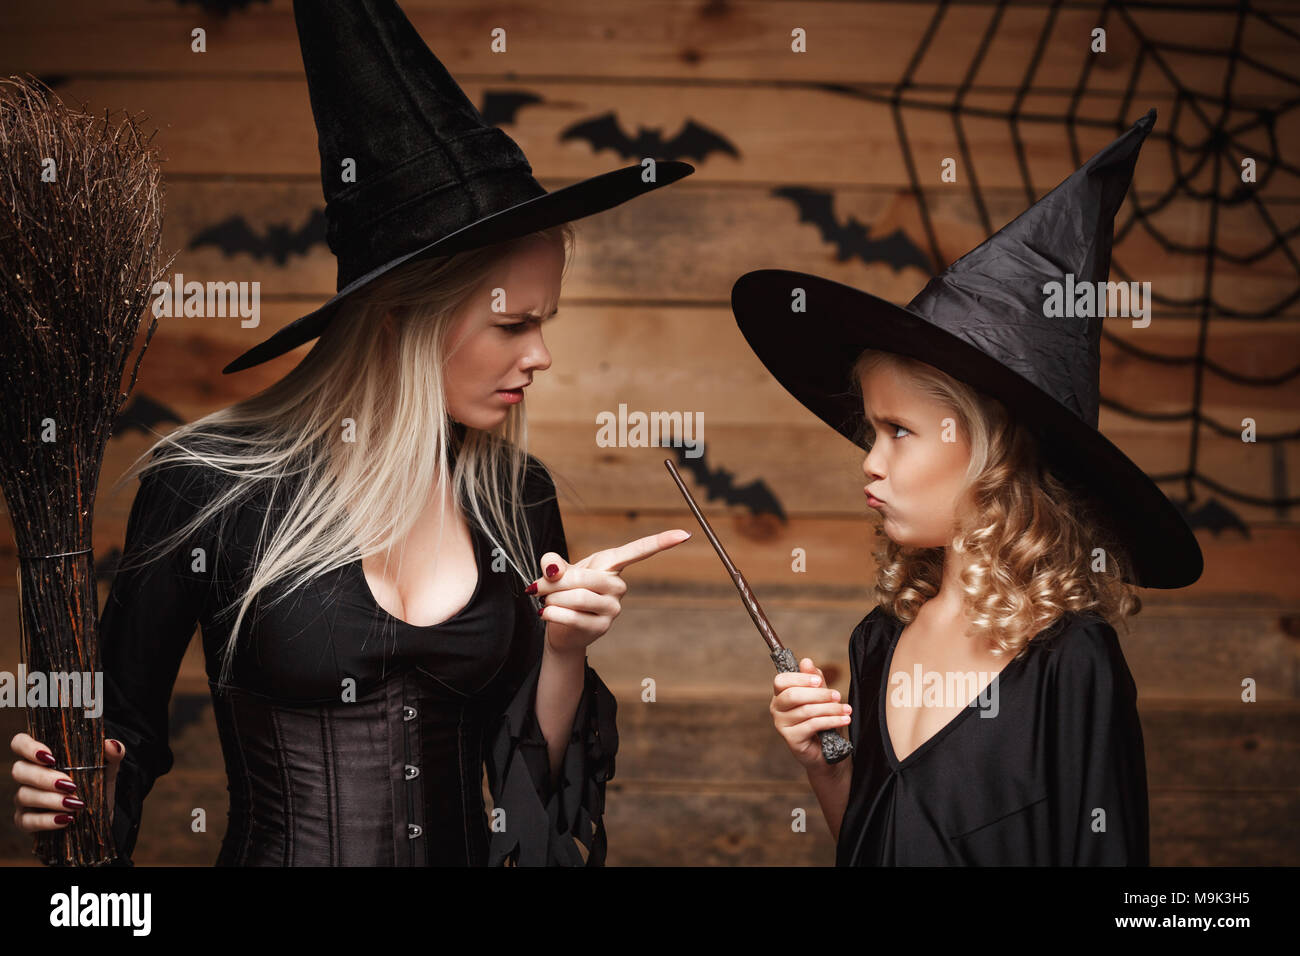 Halloween Concept - stressful witch mother teaching her daughter in witch costumes celebrating Halloween over bats and spider web on Wooden studio background. - Stock Image